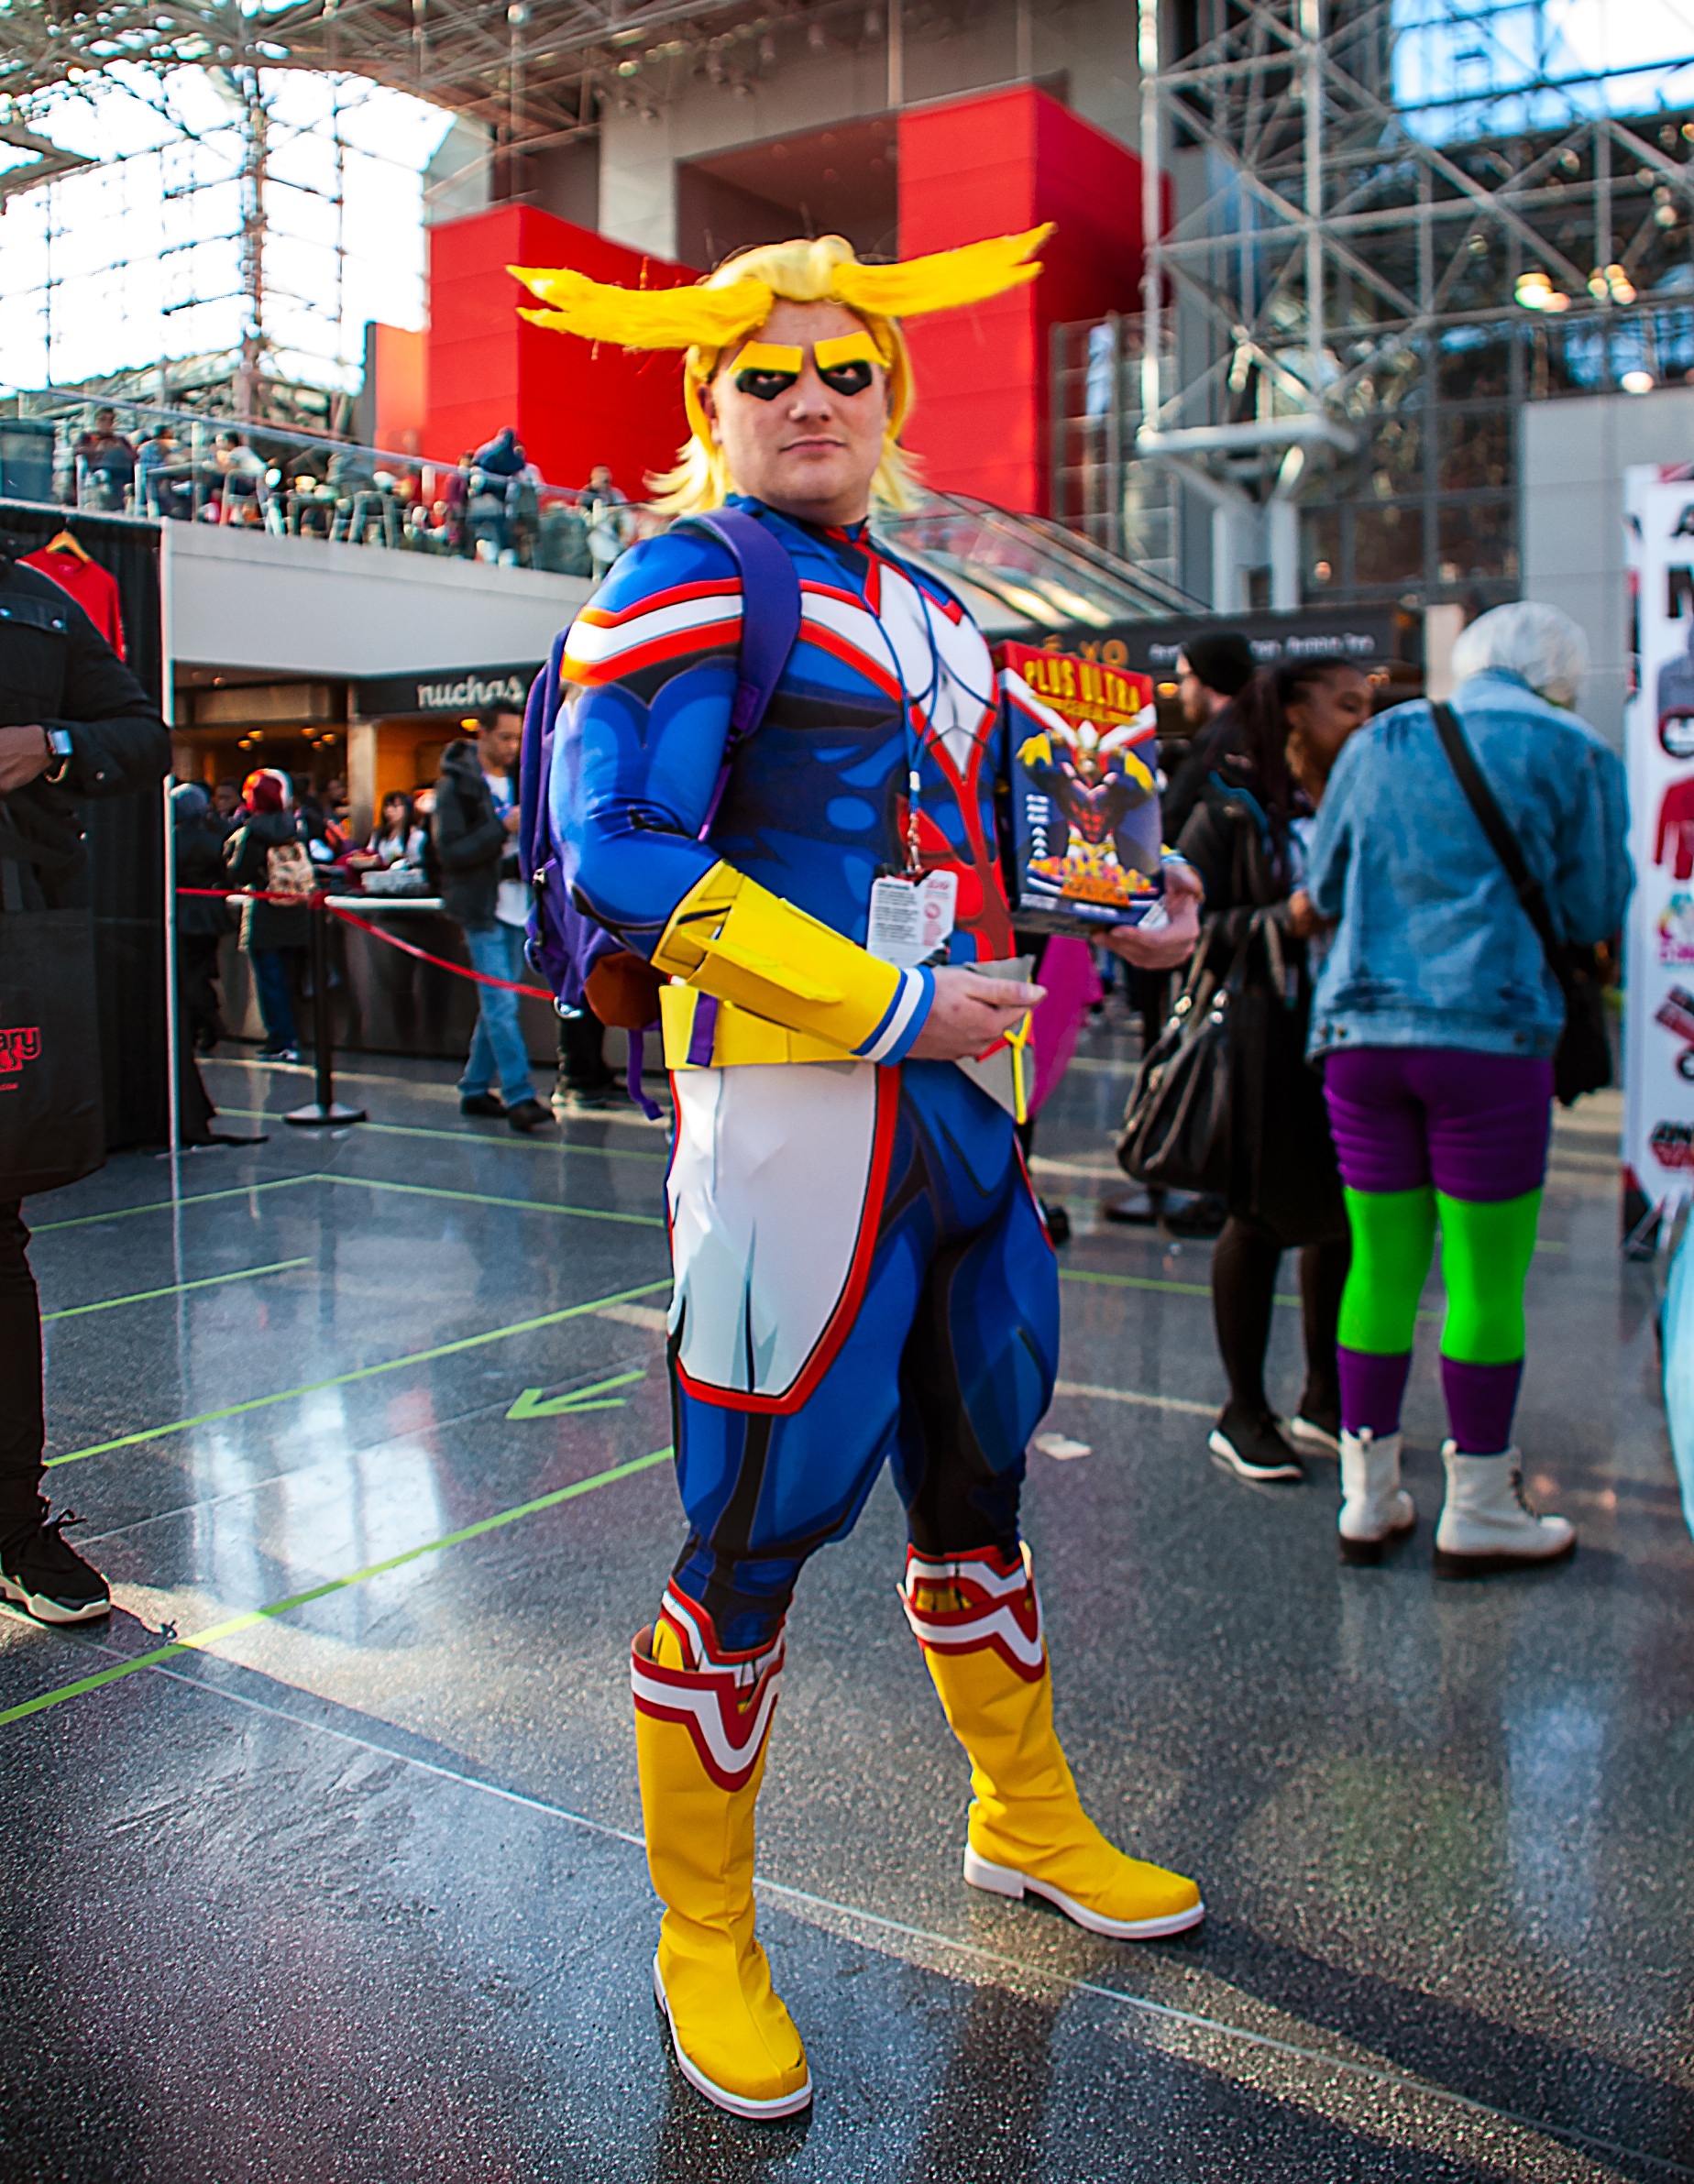 All Might Plus Ultra Cosplay from My Hero Academia